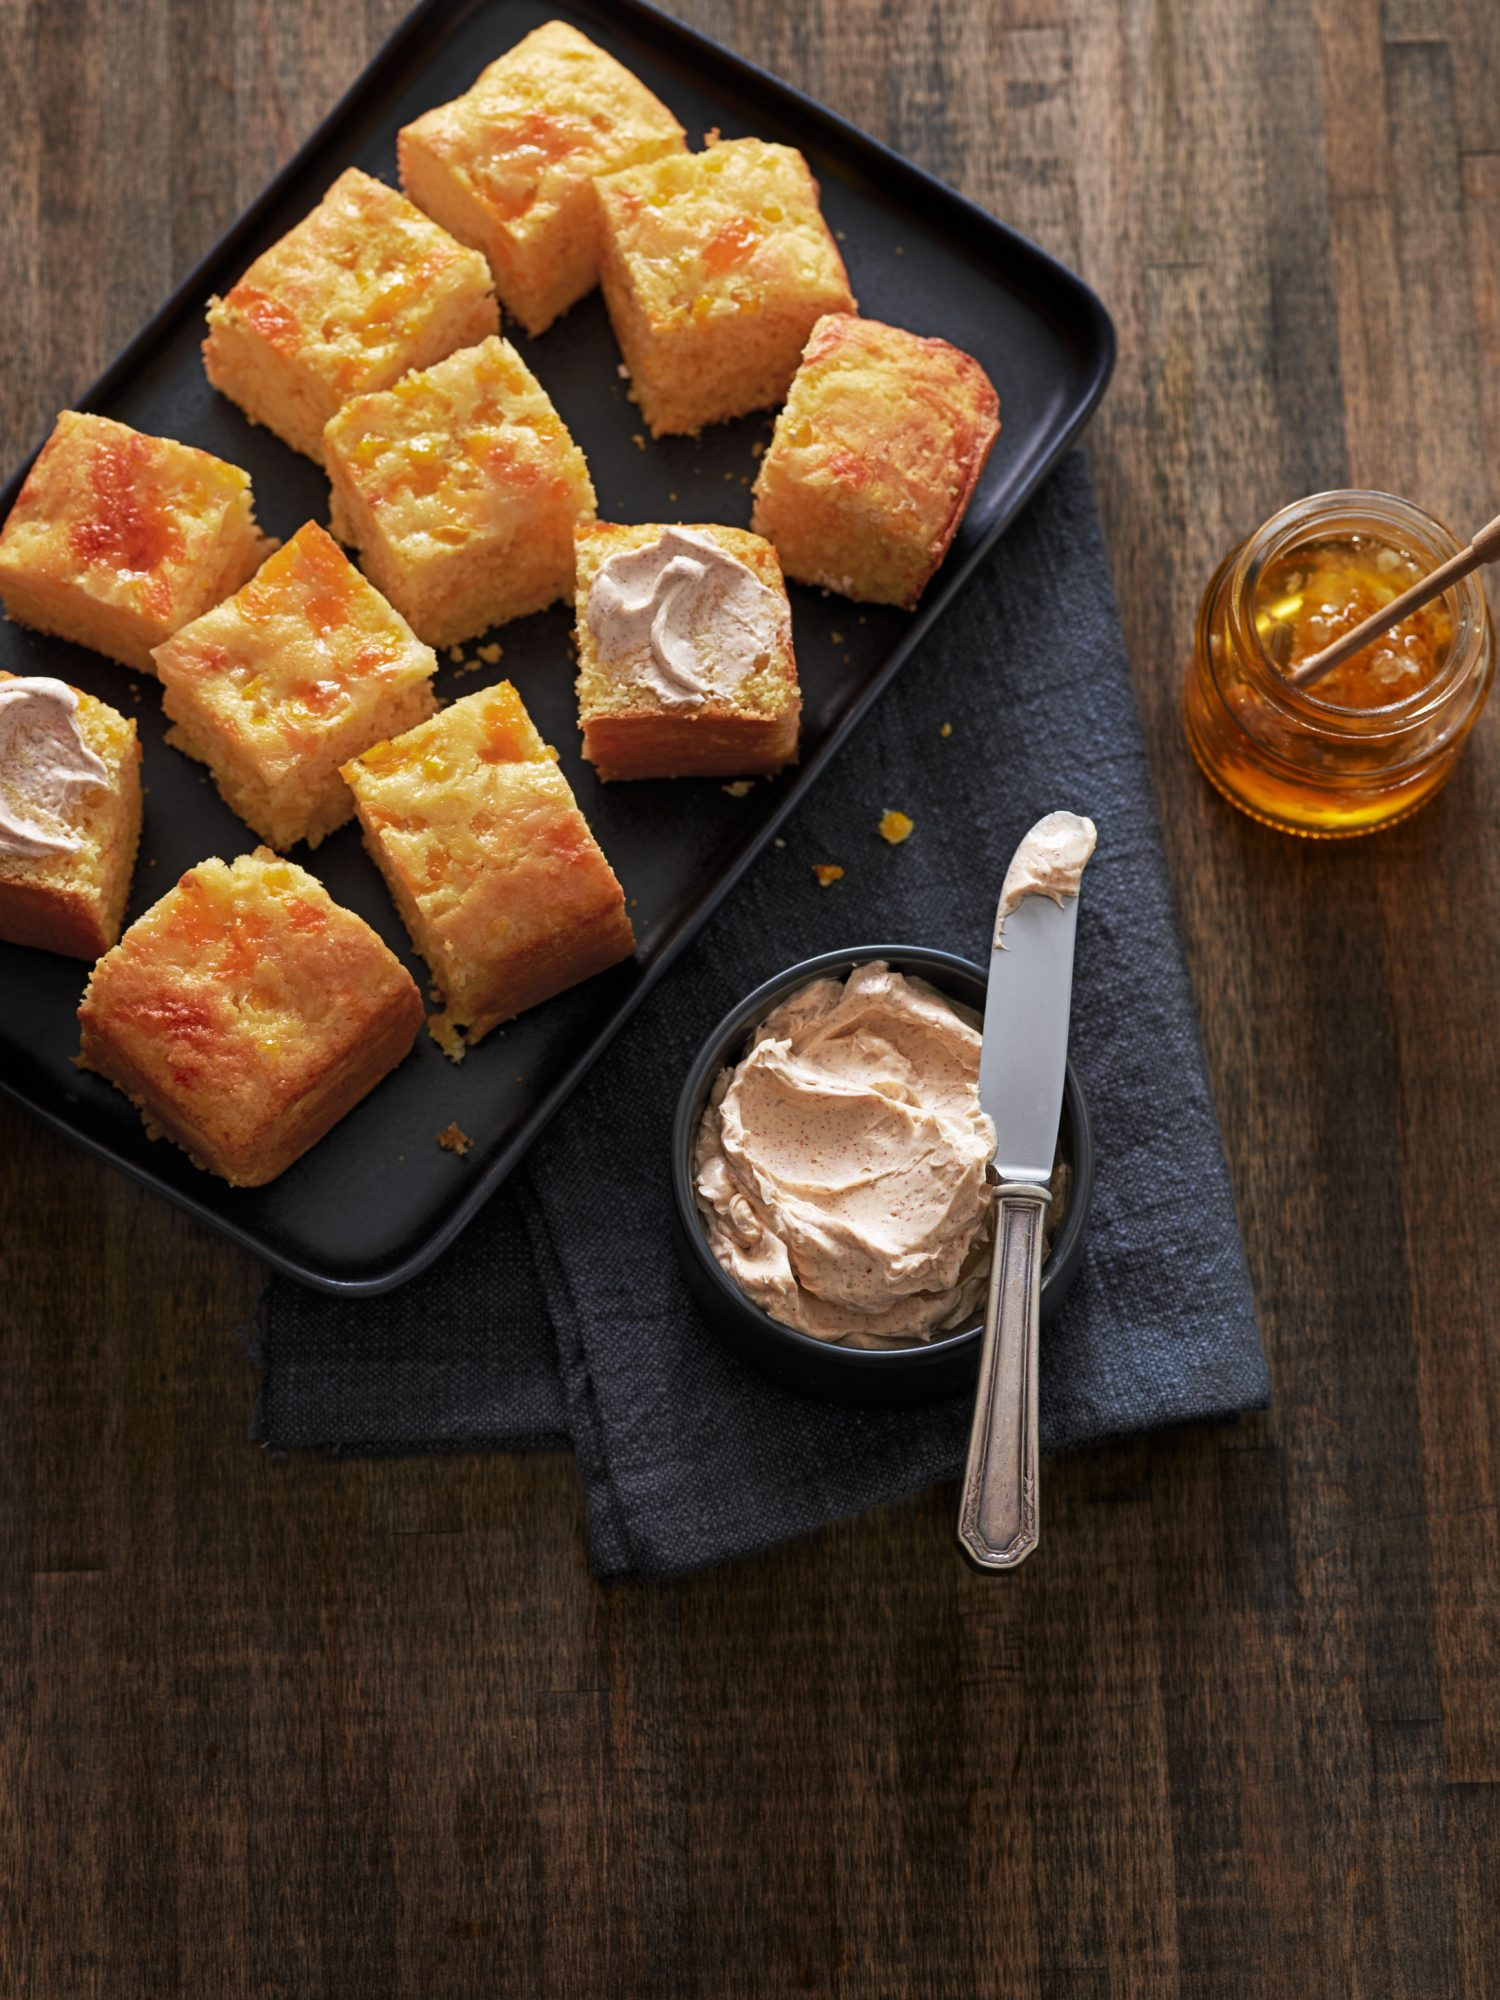 Country Crock® Honey Butter Spread